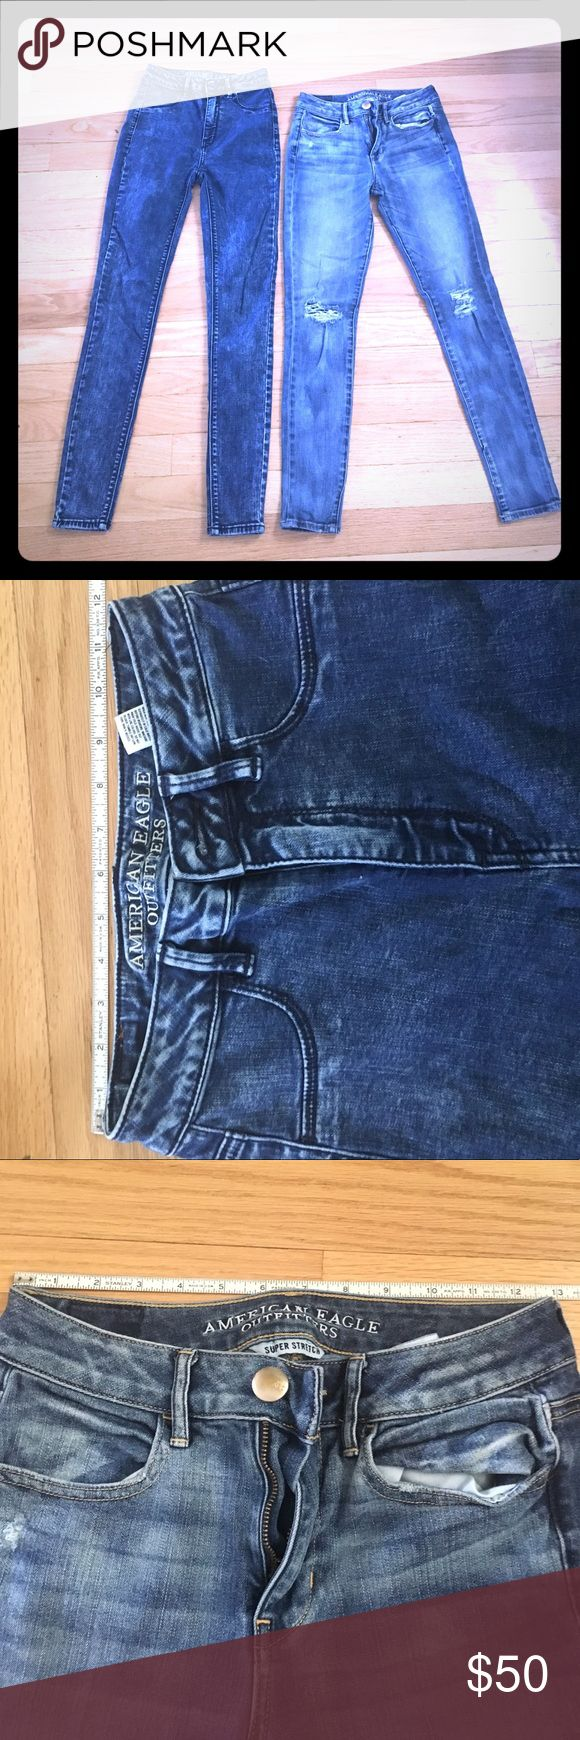 ☁️American Eagle Sky High Skinny Jean Bundle☁️ Bundle of two skinny jeans both size 2 regular. Excellent condition no holes, stains etc. One pair is the sky high waisted acid wash with a 28 inch inseam, and the other is a pair of medium rise 27 inch inseam skinny jeans. *see photos for other measurements. Excellent deal! ✅Offers 🚫Trades 📦Ships in 24 hrs Mon-Fri American Eagle Outfitters Jeans Skinny